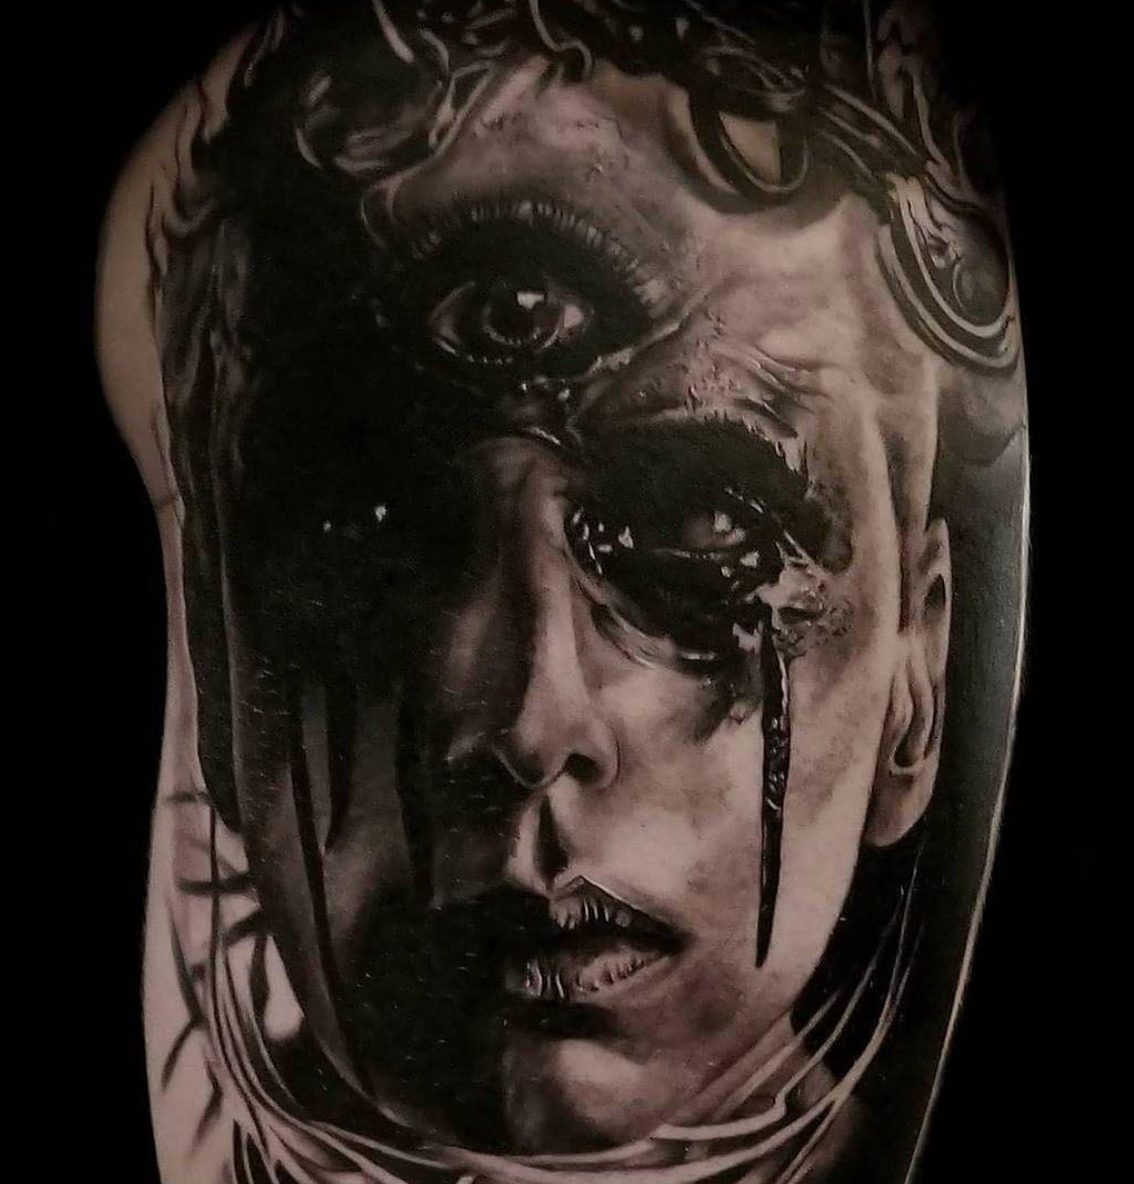 Black and grey horror sleeve by @calebmorgantattoo